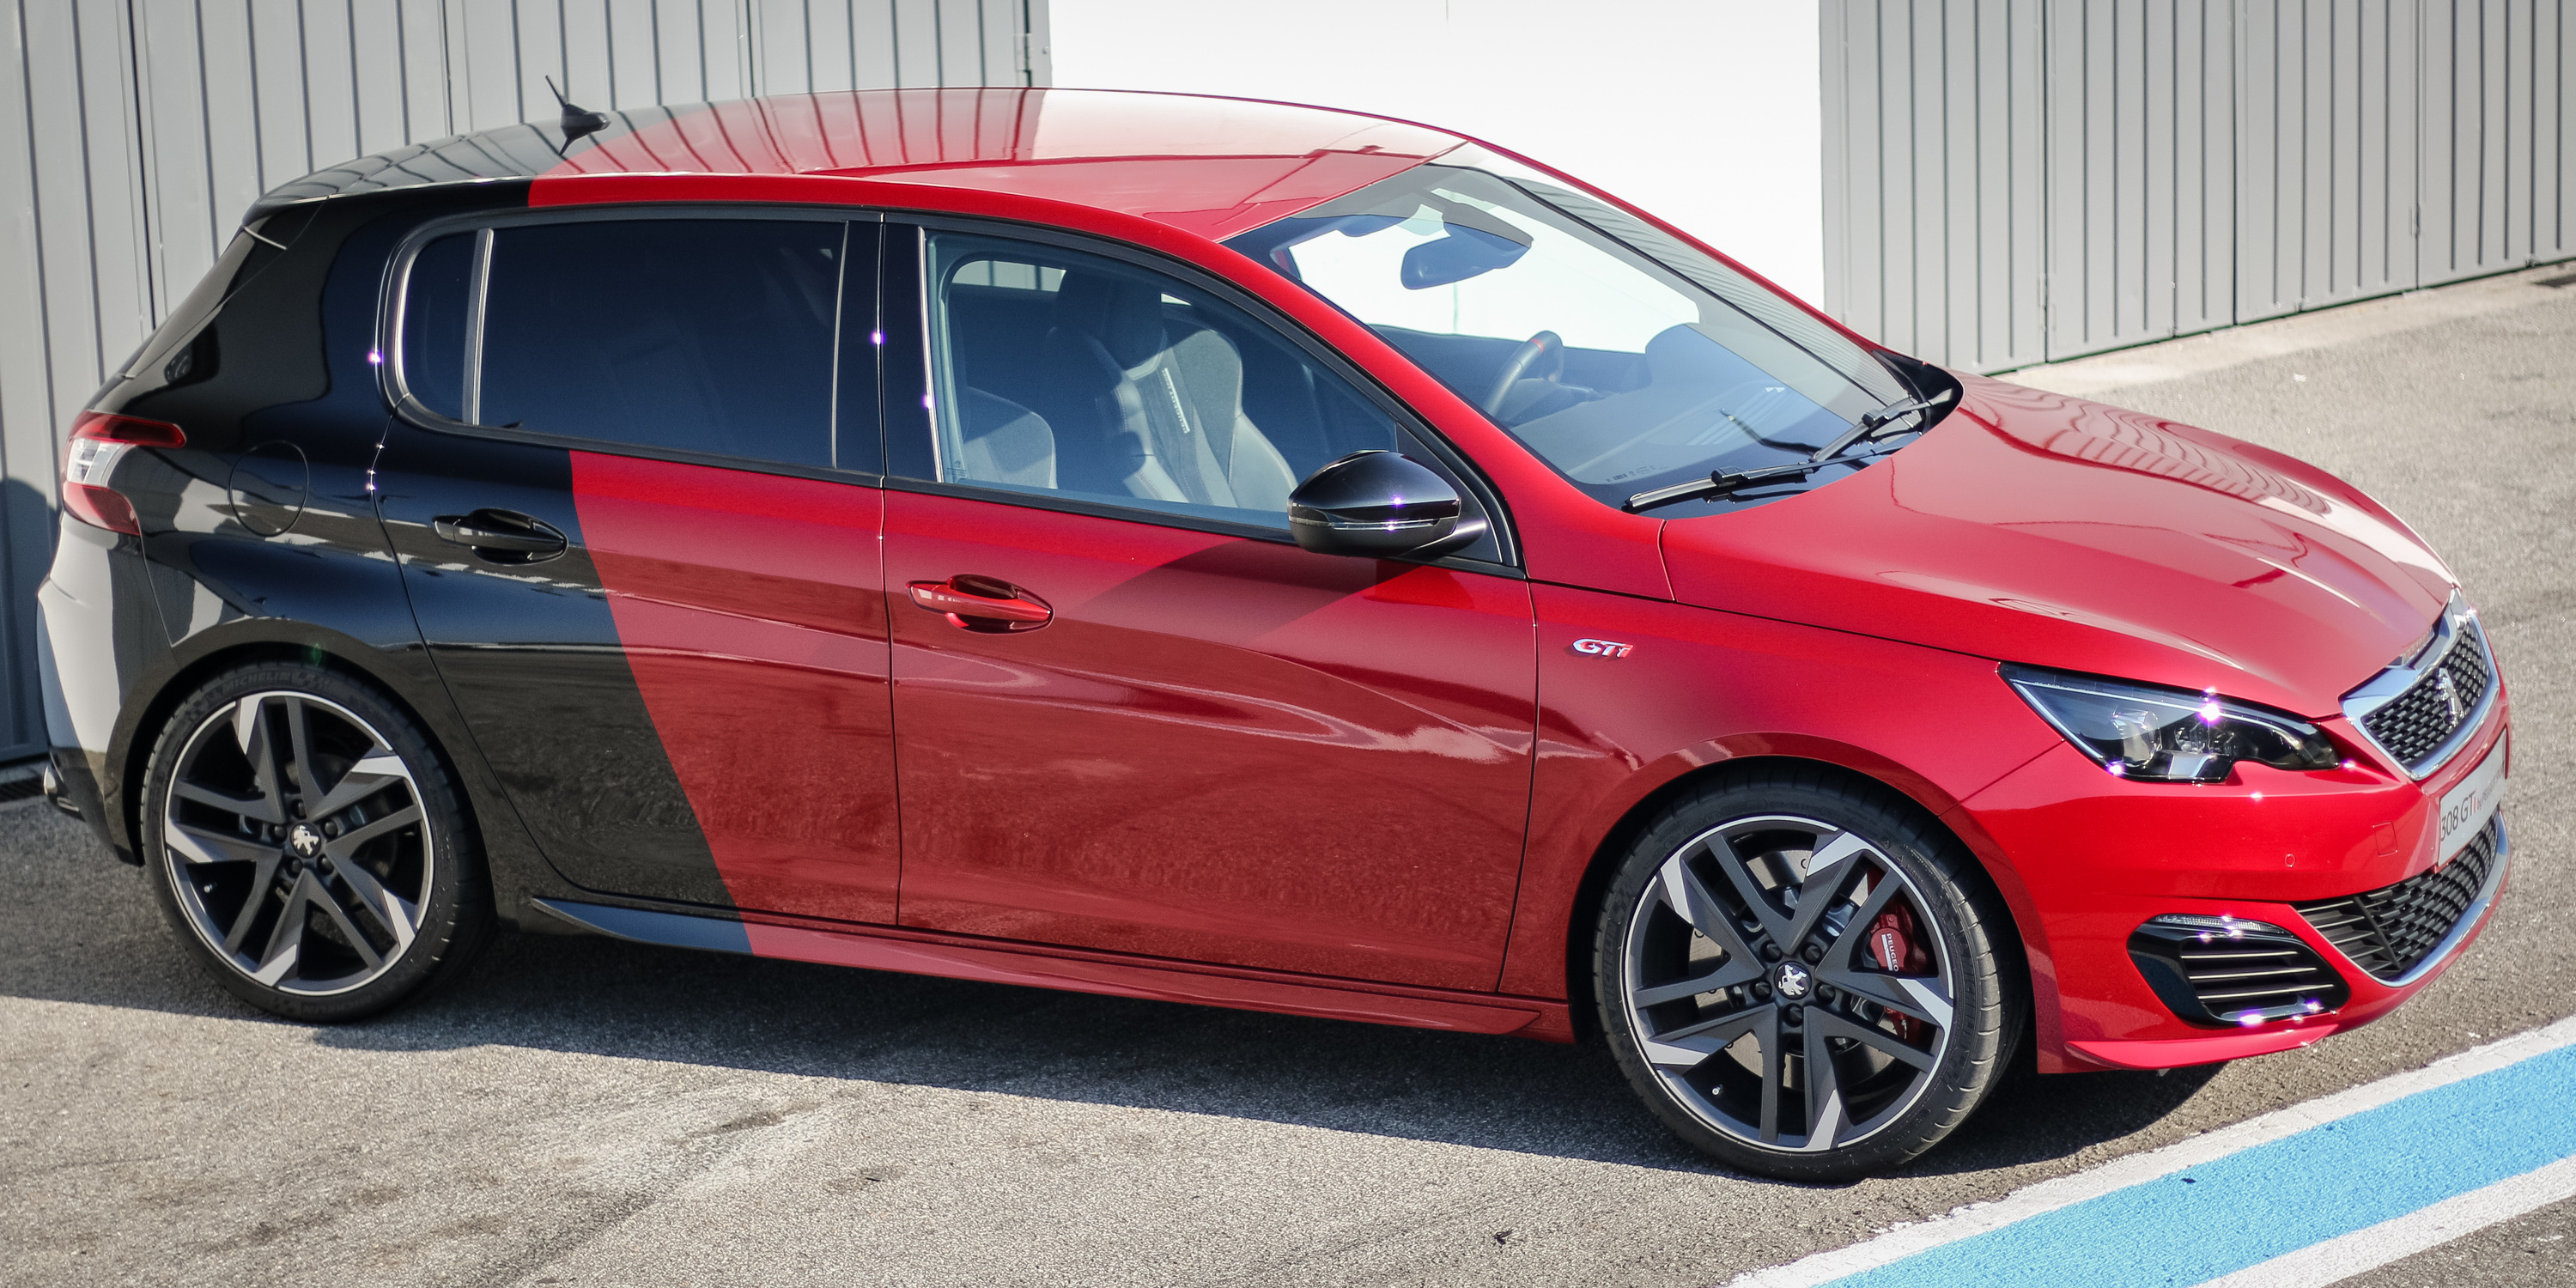 Download 2016 peugeot 308 gti wallpapers for iphone 40544 for Peugeot 208 gti gebraucht